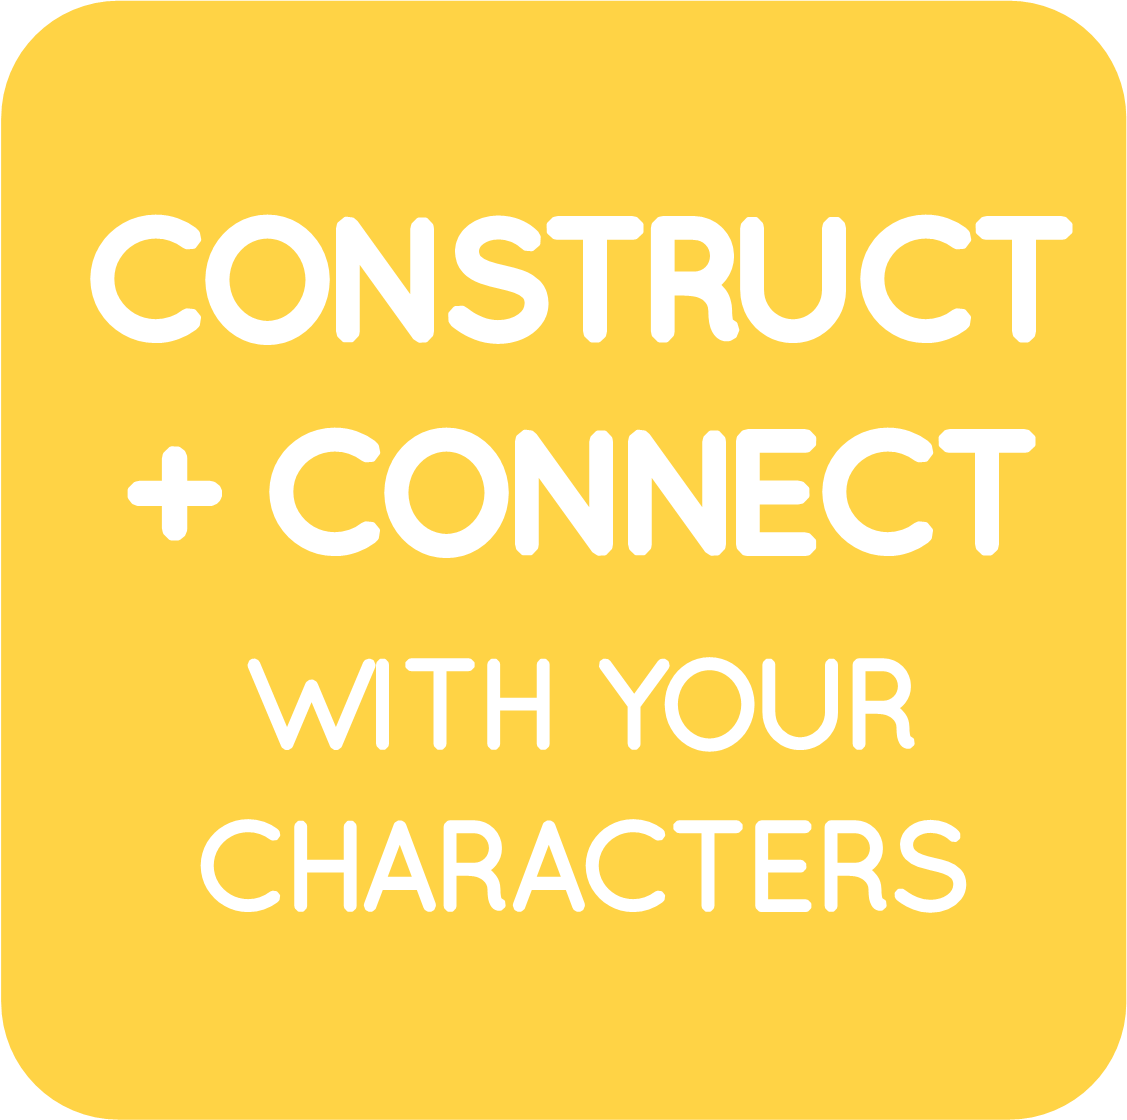 02-construct + connect with your characters.png